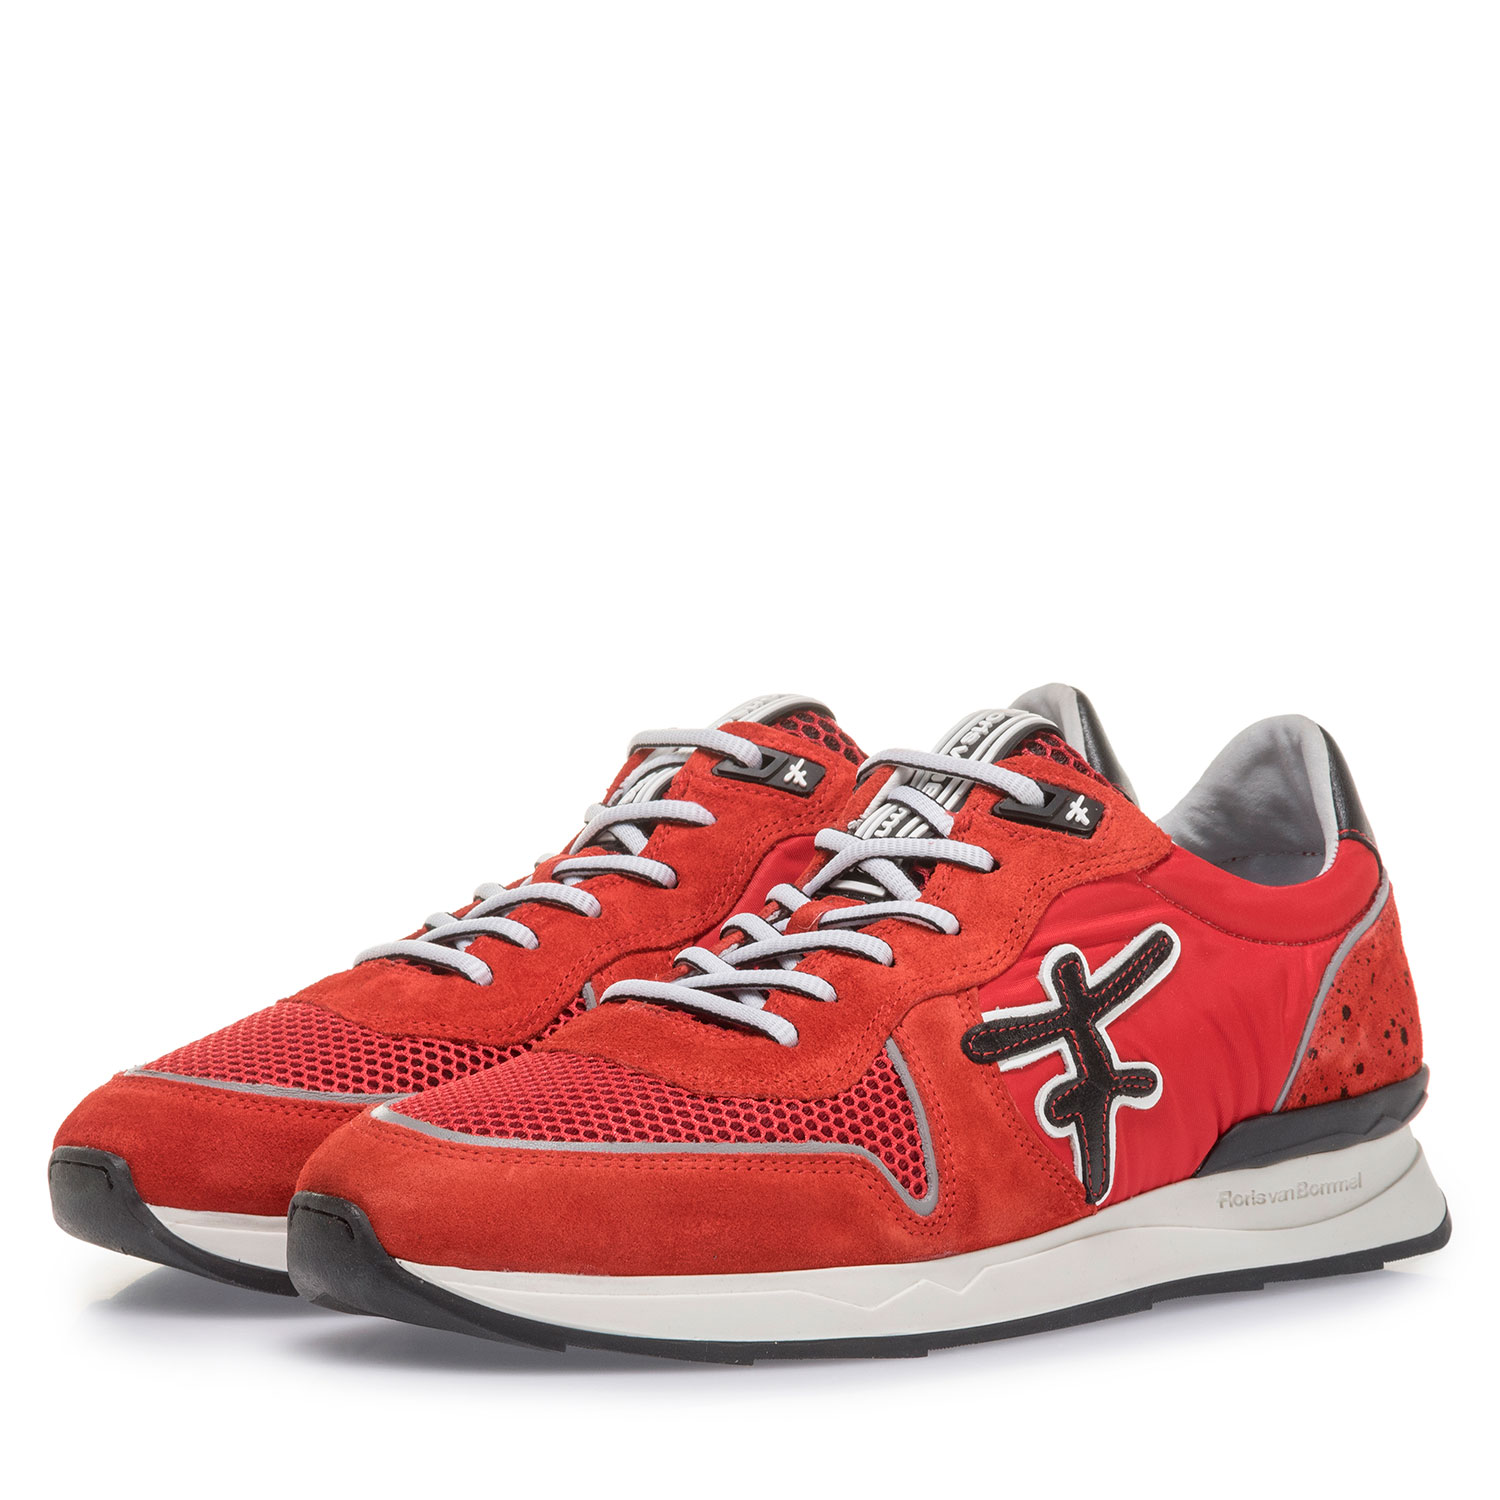 16346/10 - Red suede leather sneaker